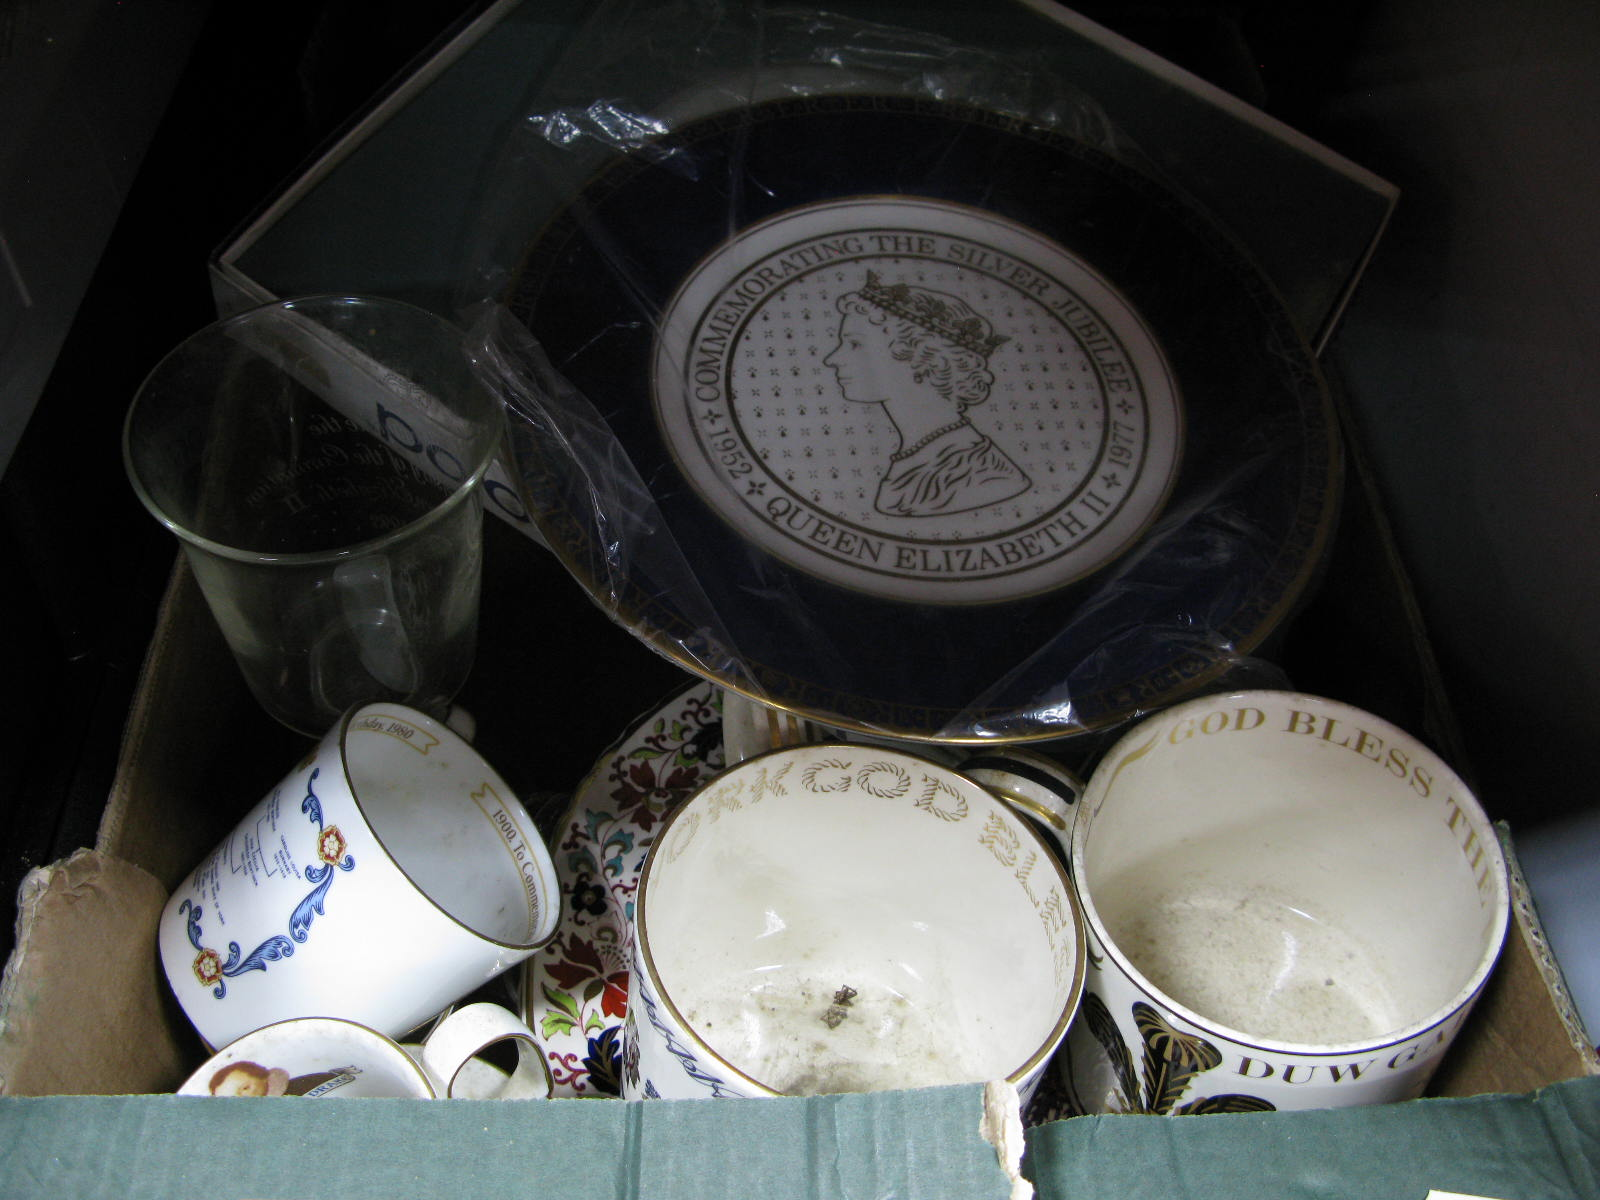 Lot 1052 - A Wedgwood Mug Commemorating the Investiture of The Prince of Wales, designed by Richard Guyatt, a